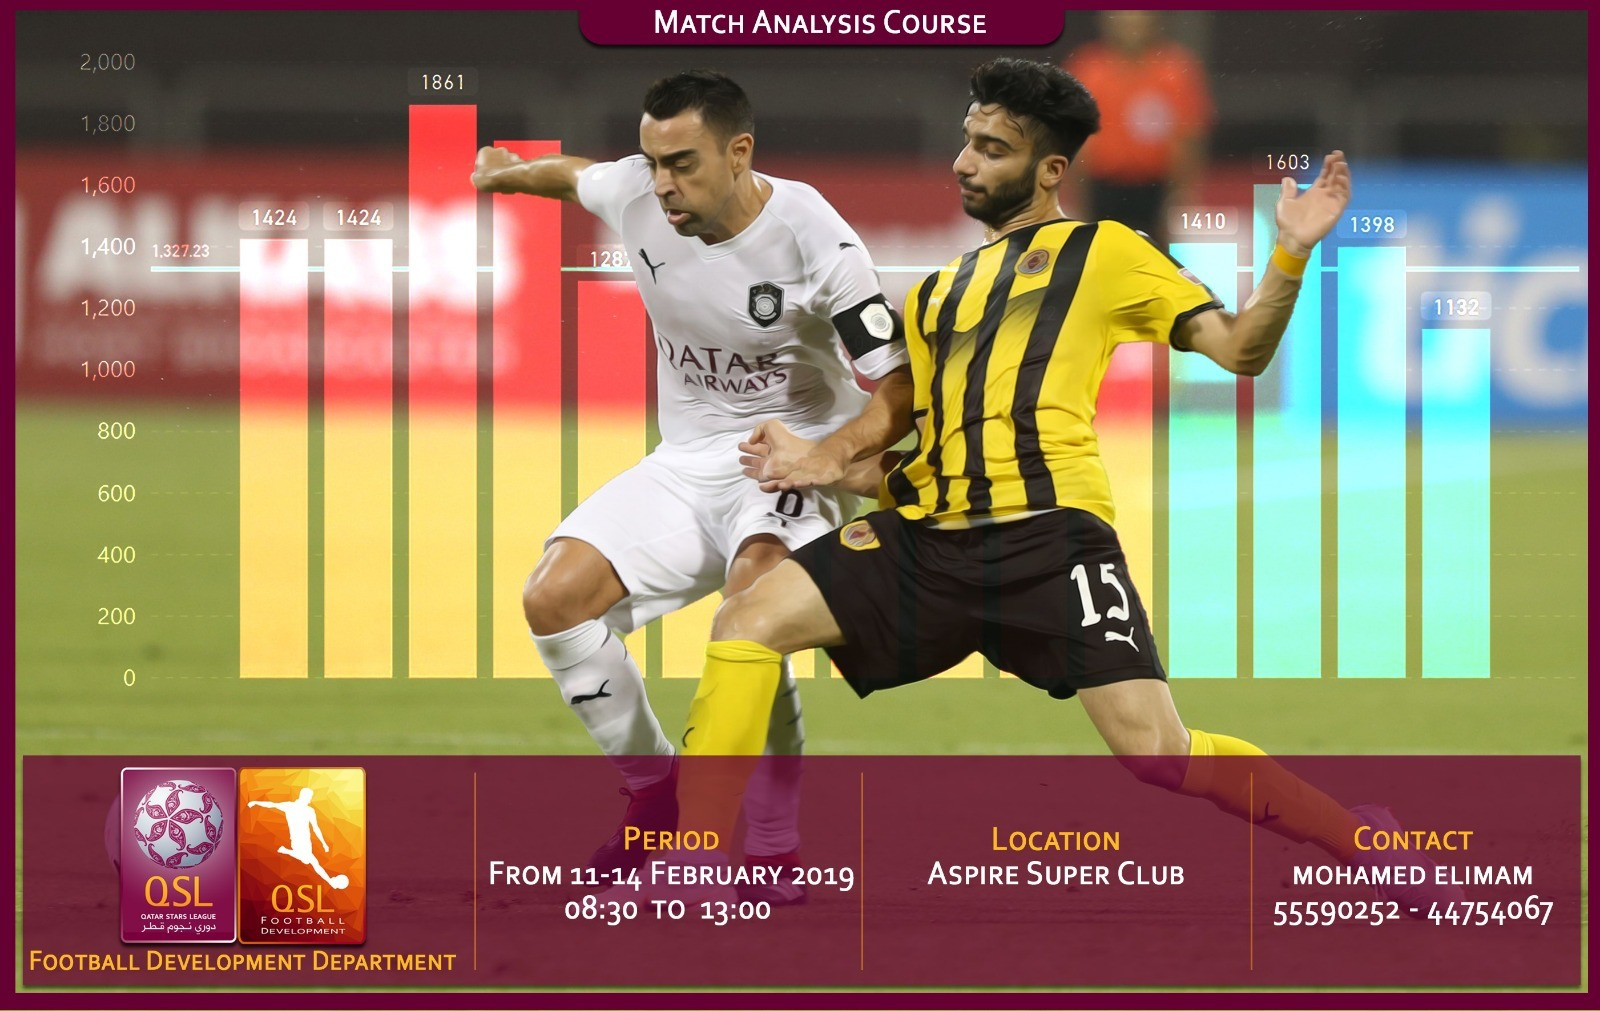 QSL's Match Analysis course from 11th-14th February